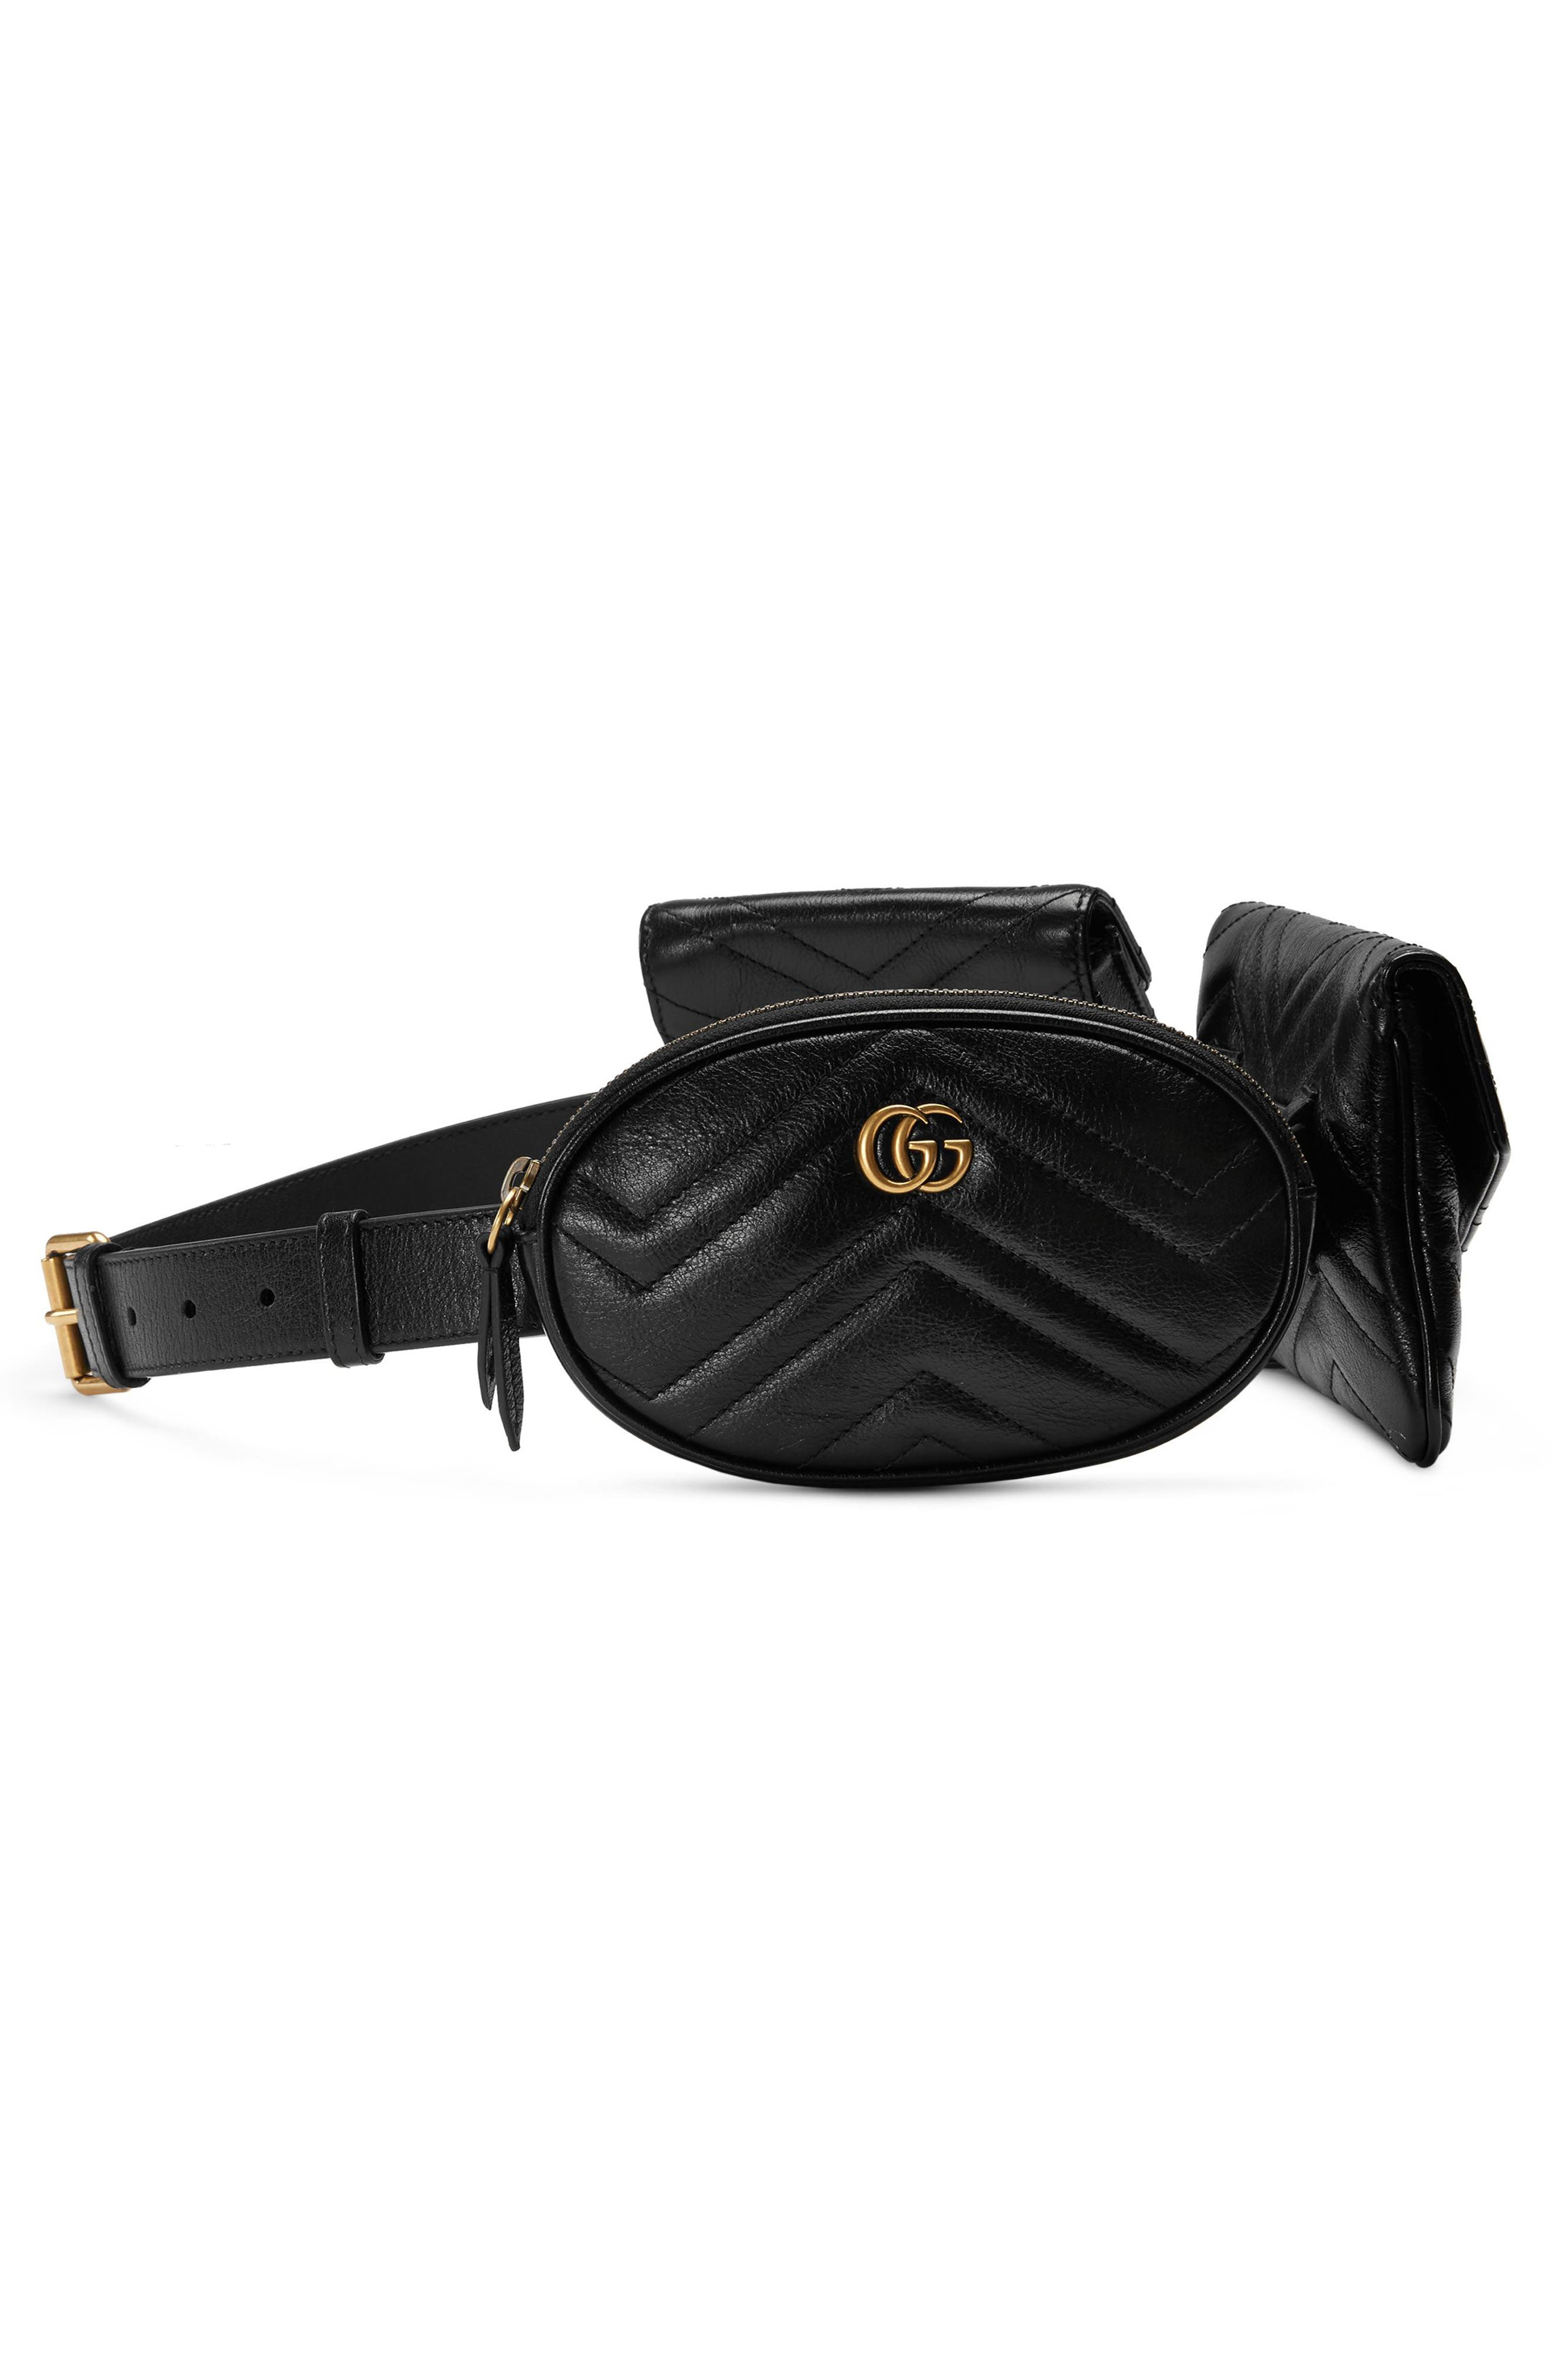 GG Marmont 2.0 Matelassé Triple Pouch Leather Belt Bag,                             Alternate thumbnail 5, color,                             001